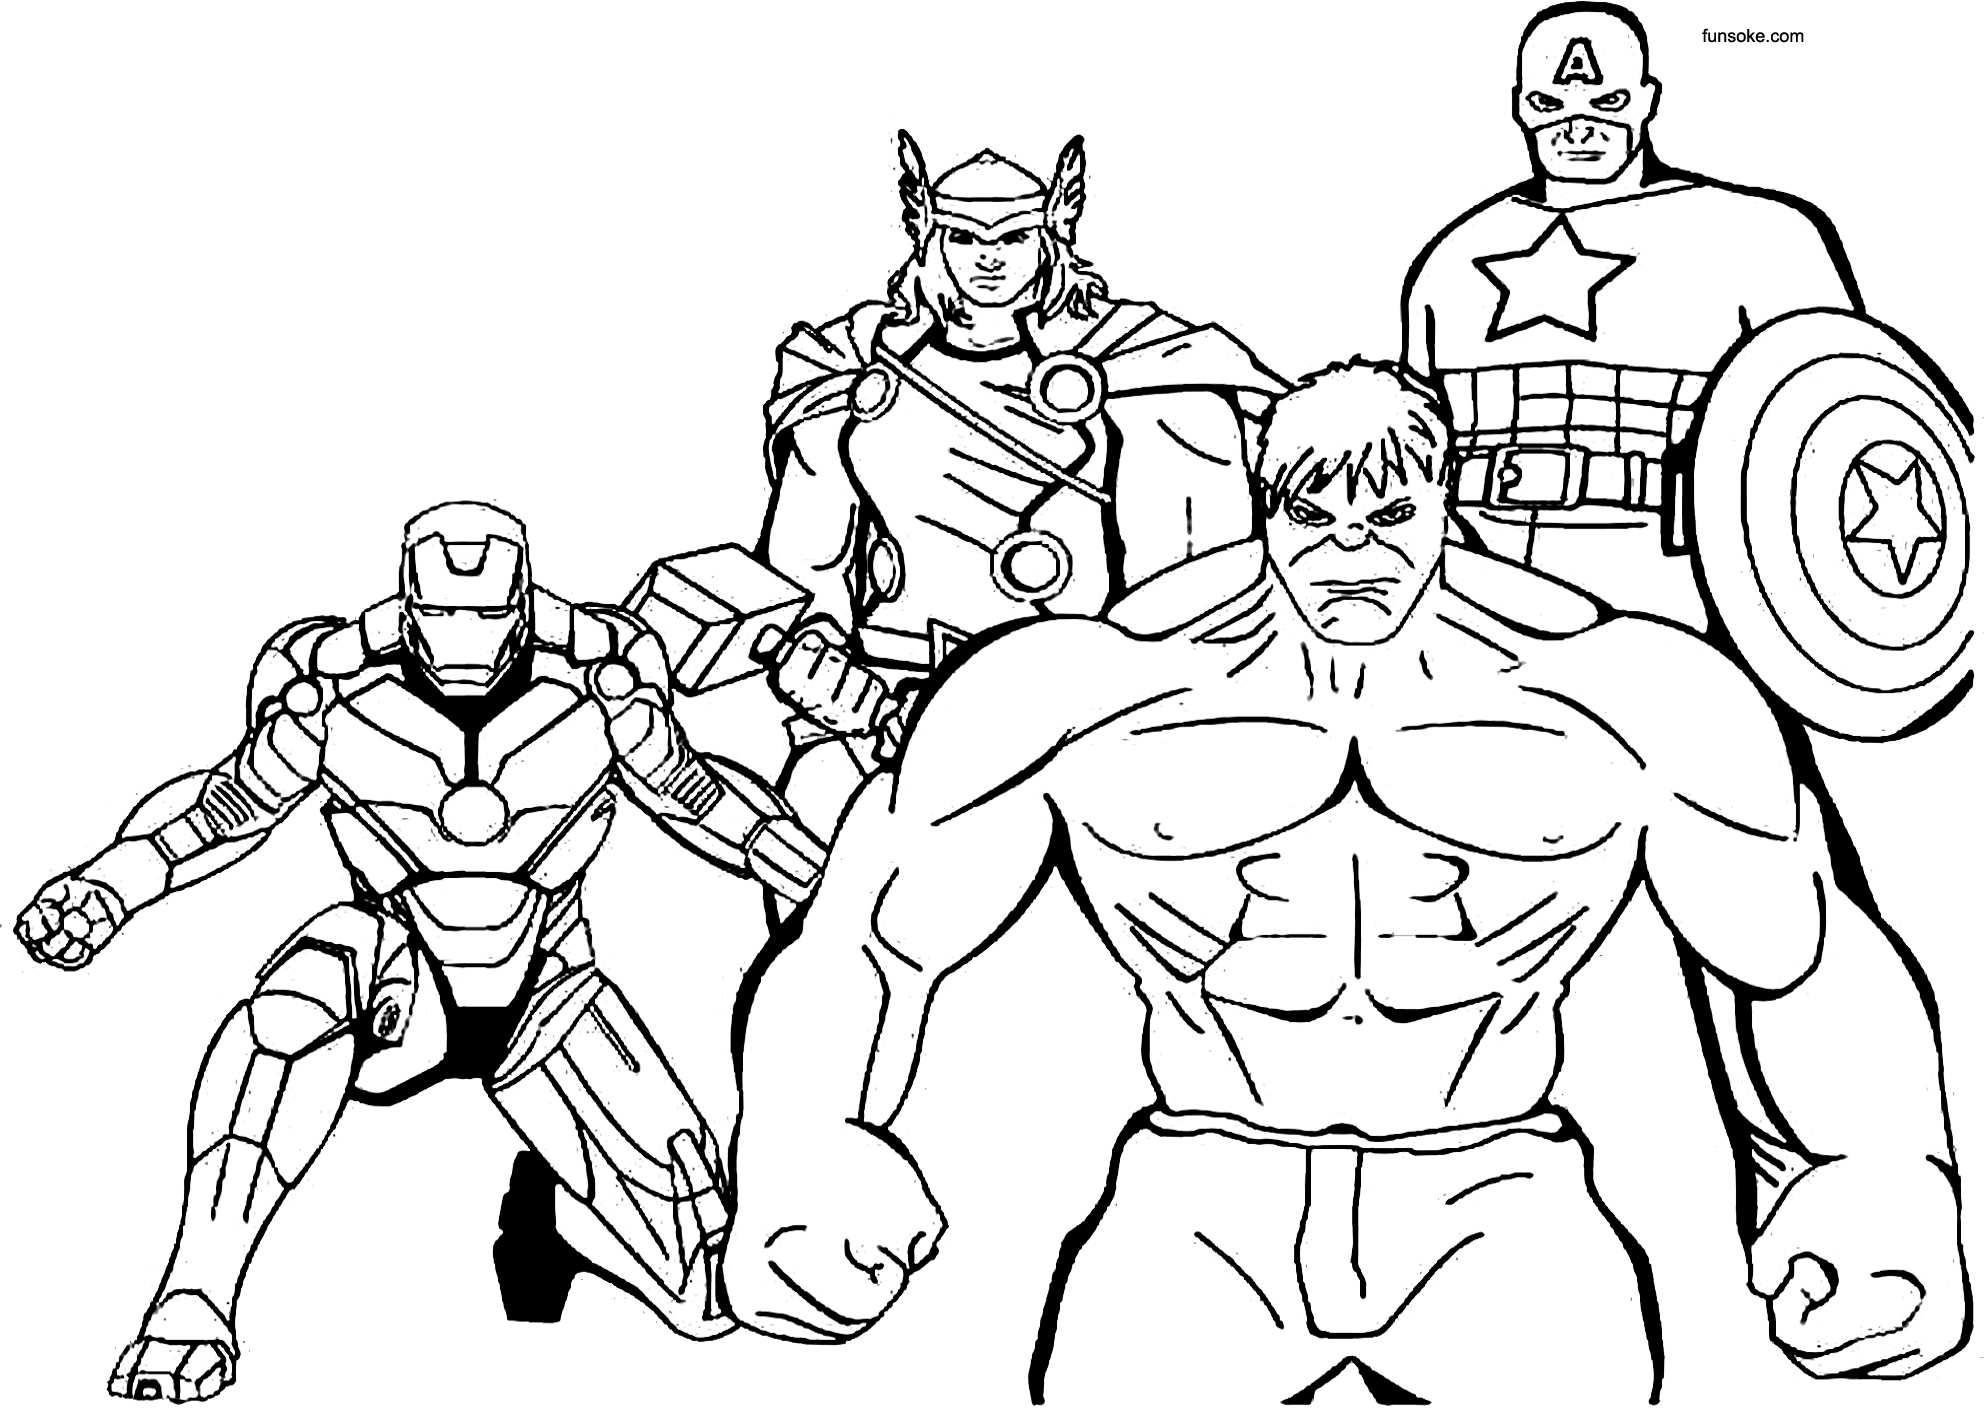 young marvel coloring book free printable coloring pages for kids avengers funsoke book young marvel coloring